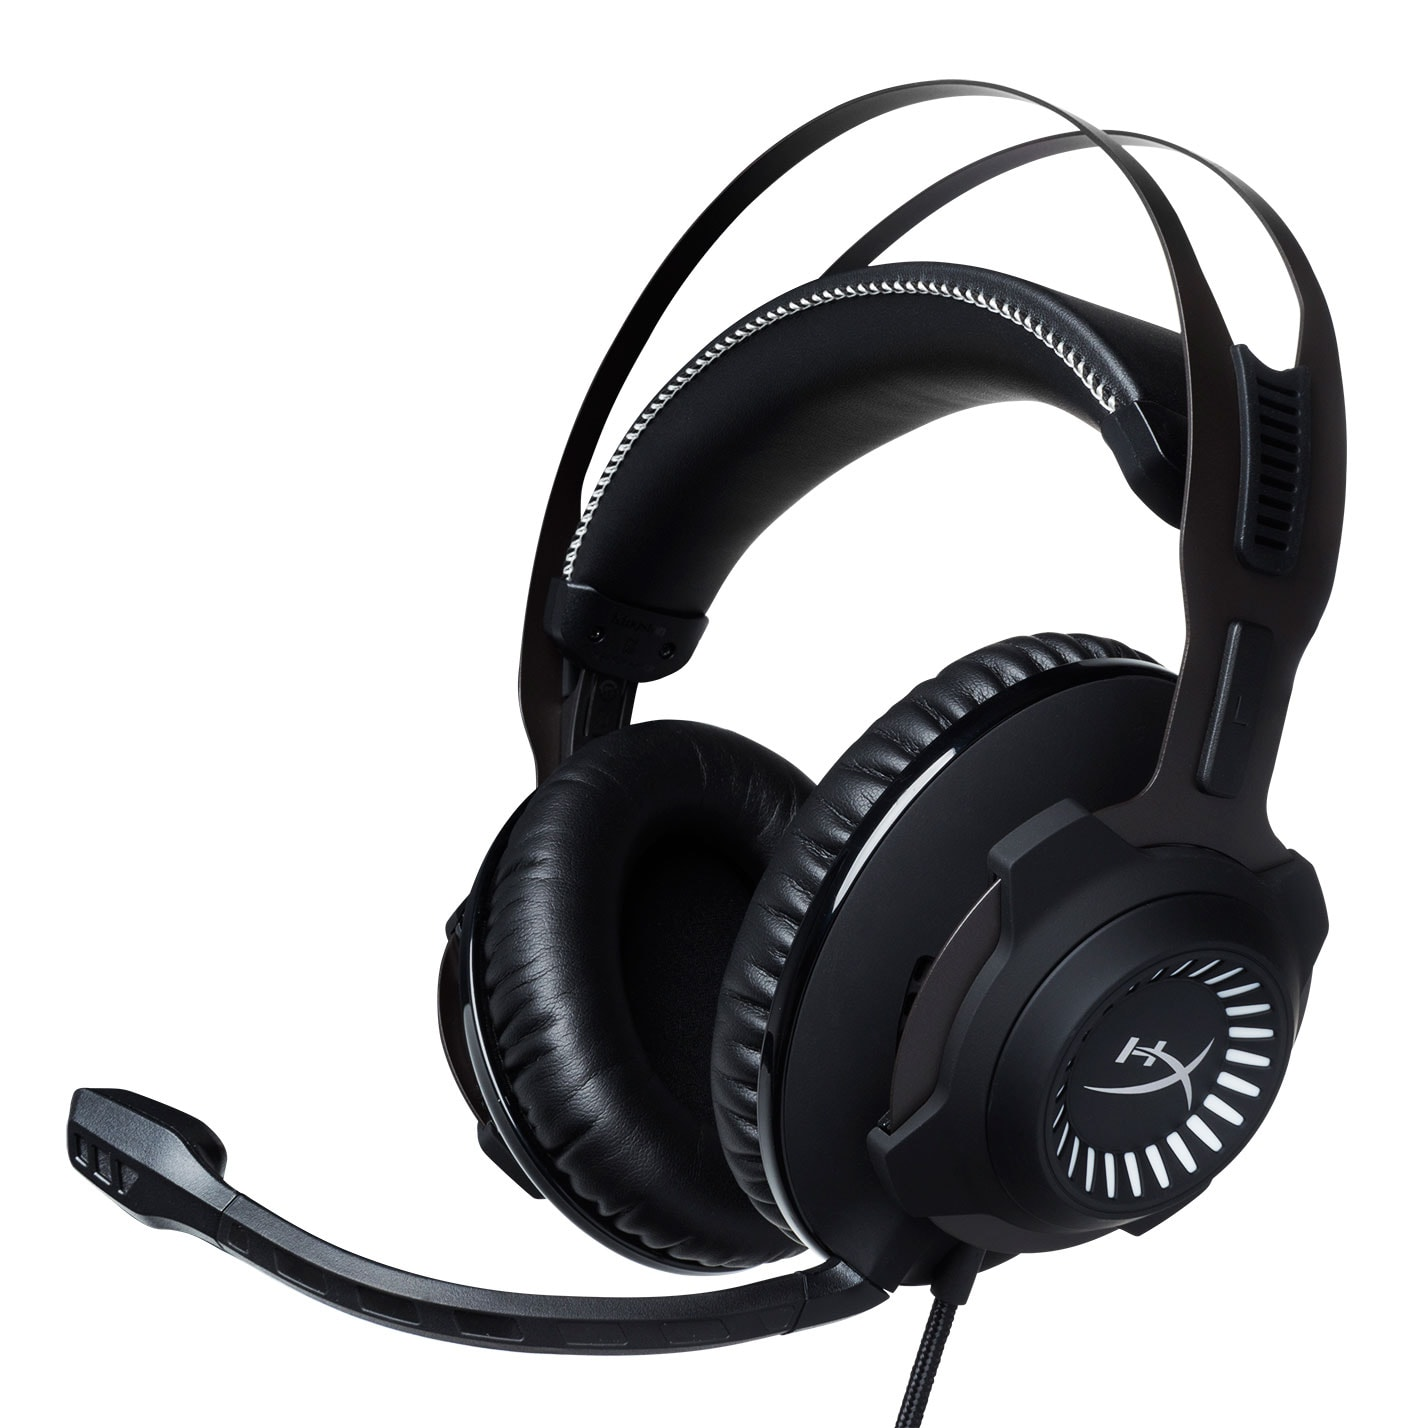 HyperX Cloud Revolver S Gaming Headset (Gun Metal) 7.1 Surround - Micro-casque - 0